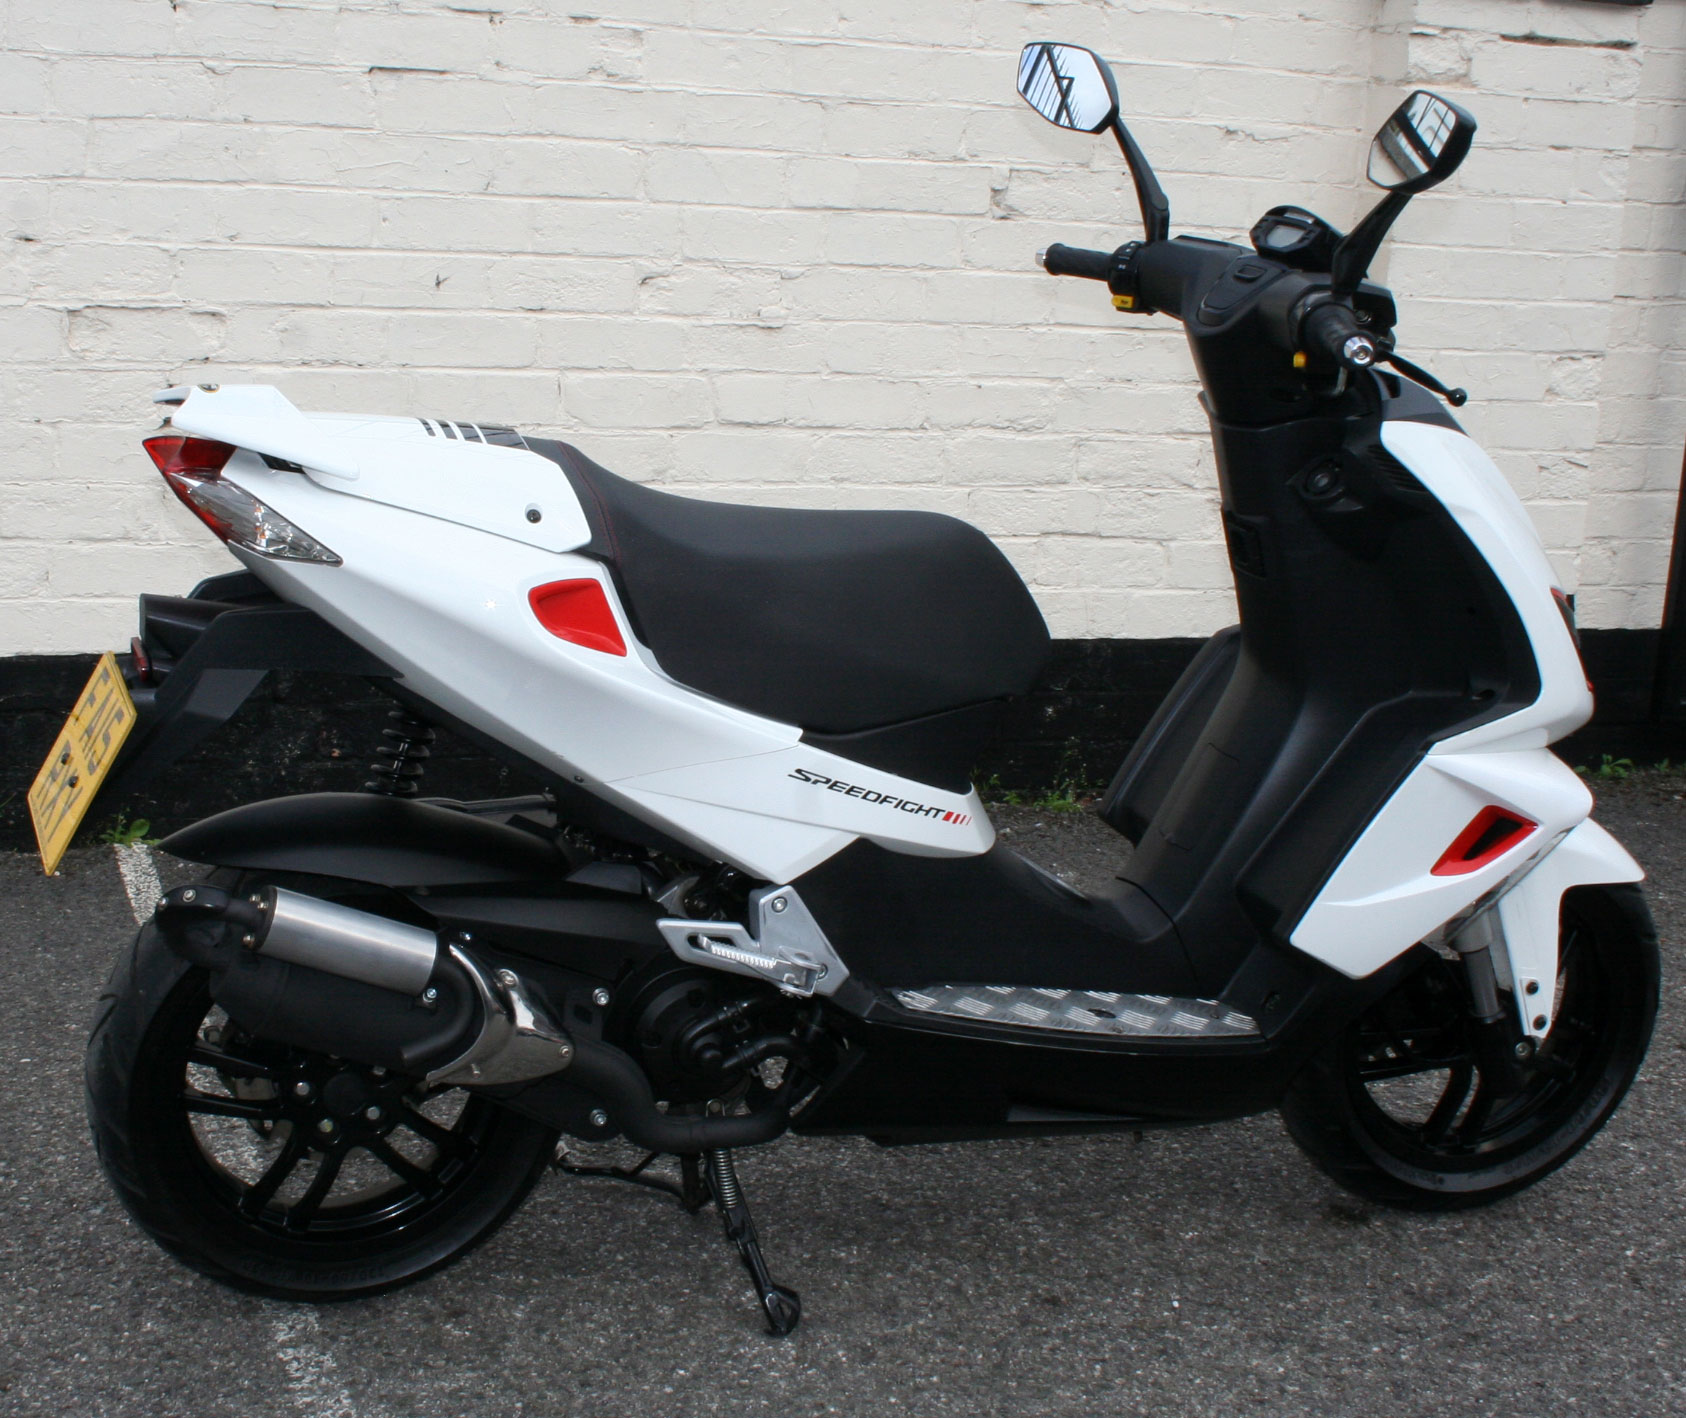 peugeot speedfight 4 iceblade 50cc for sale mansfield nottinghamshire leicestershire. Black Bedroom Furniture Sets. Home Design Ideas